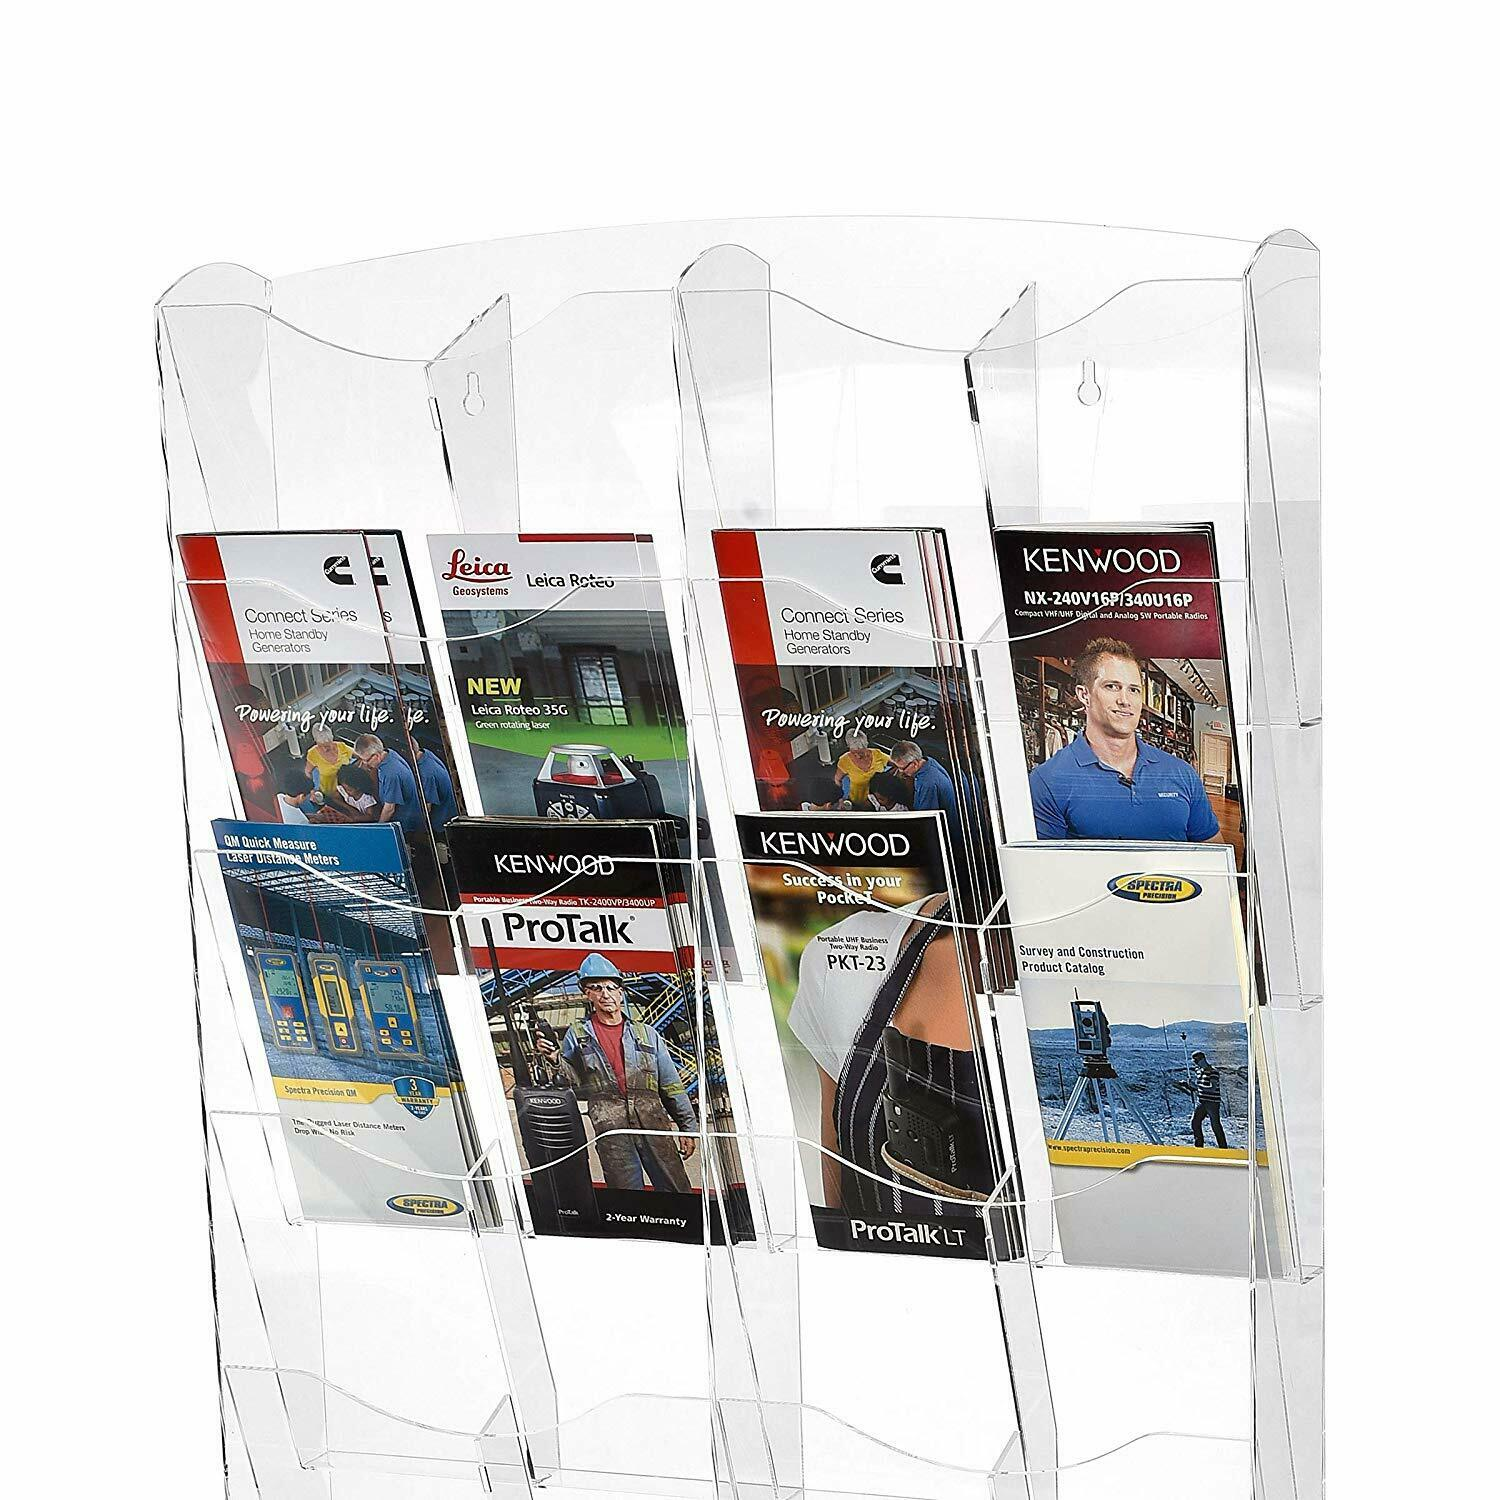 Adjustable Easy Installation Clear Acrylic Storage Pockets Durable AdirOffice Hanging Magazine Rack Wall Mounted Newspaper /& Brochure Holder 20 x 23, Black